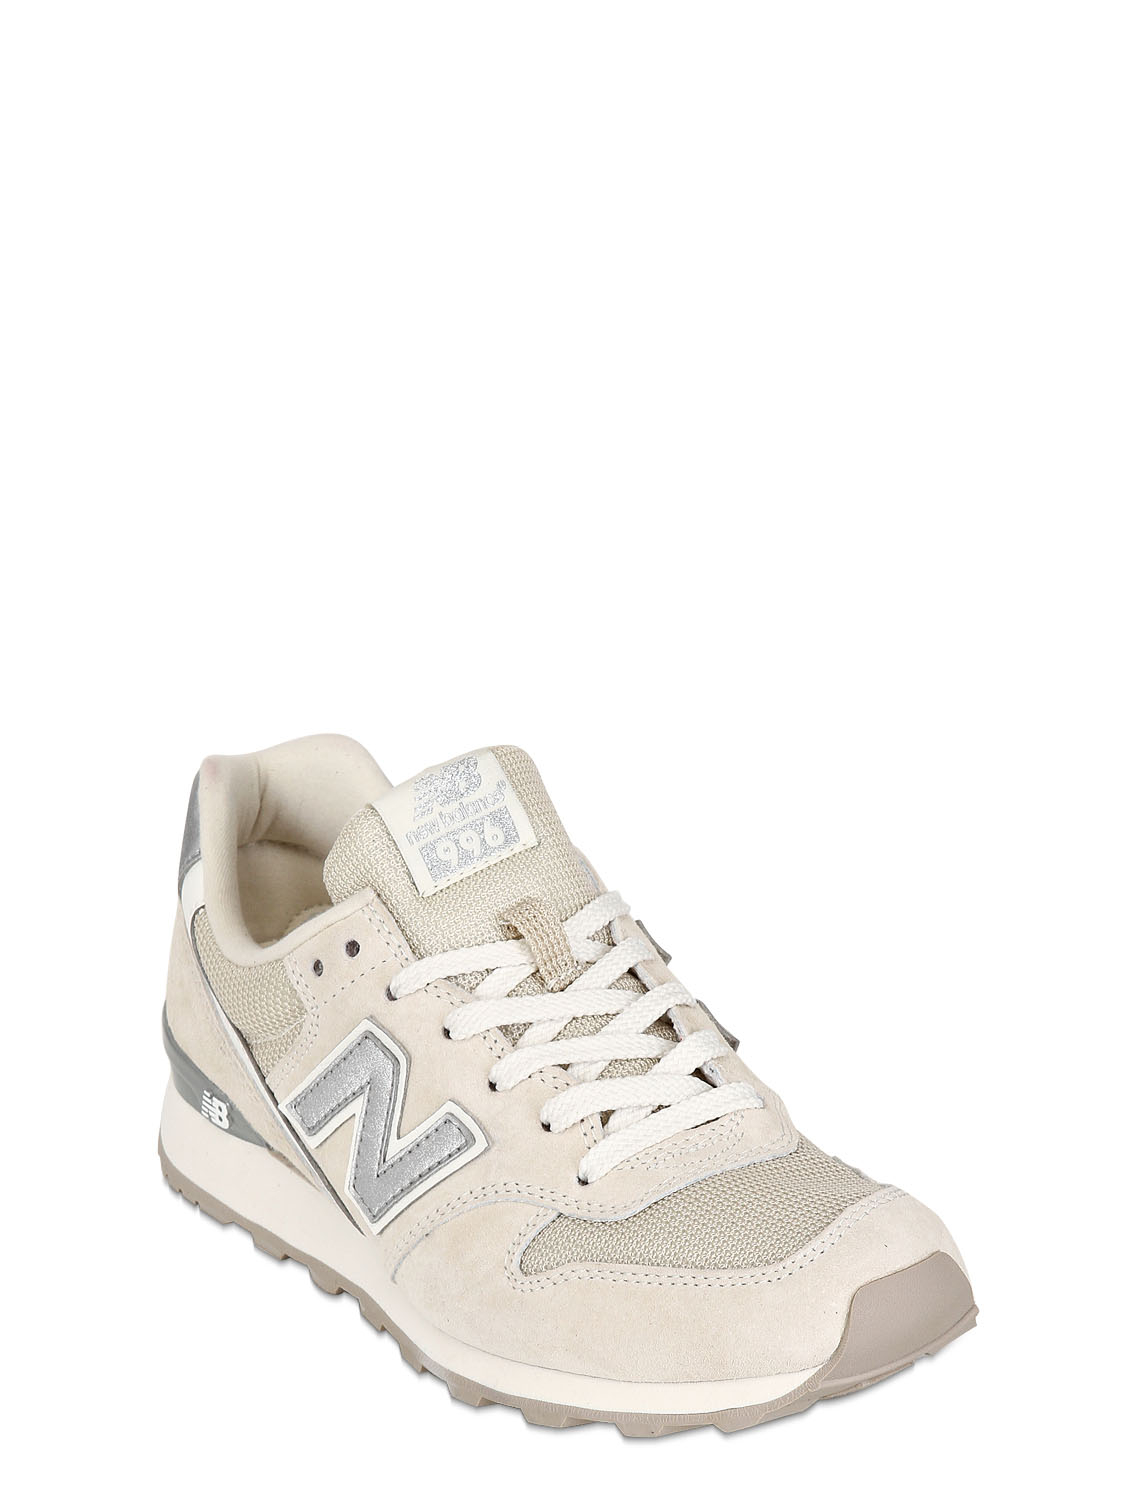 new balance 996 suede mesh sneakers in beige cream lyst. Black Bedroom Furniture Sets. Home Design Ideas